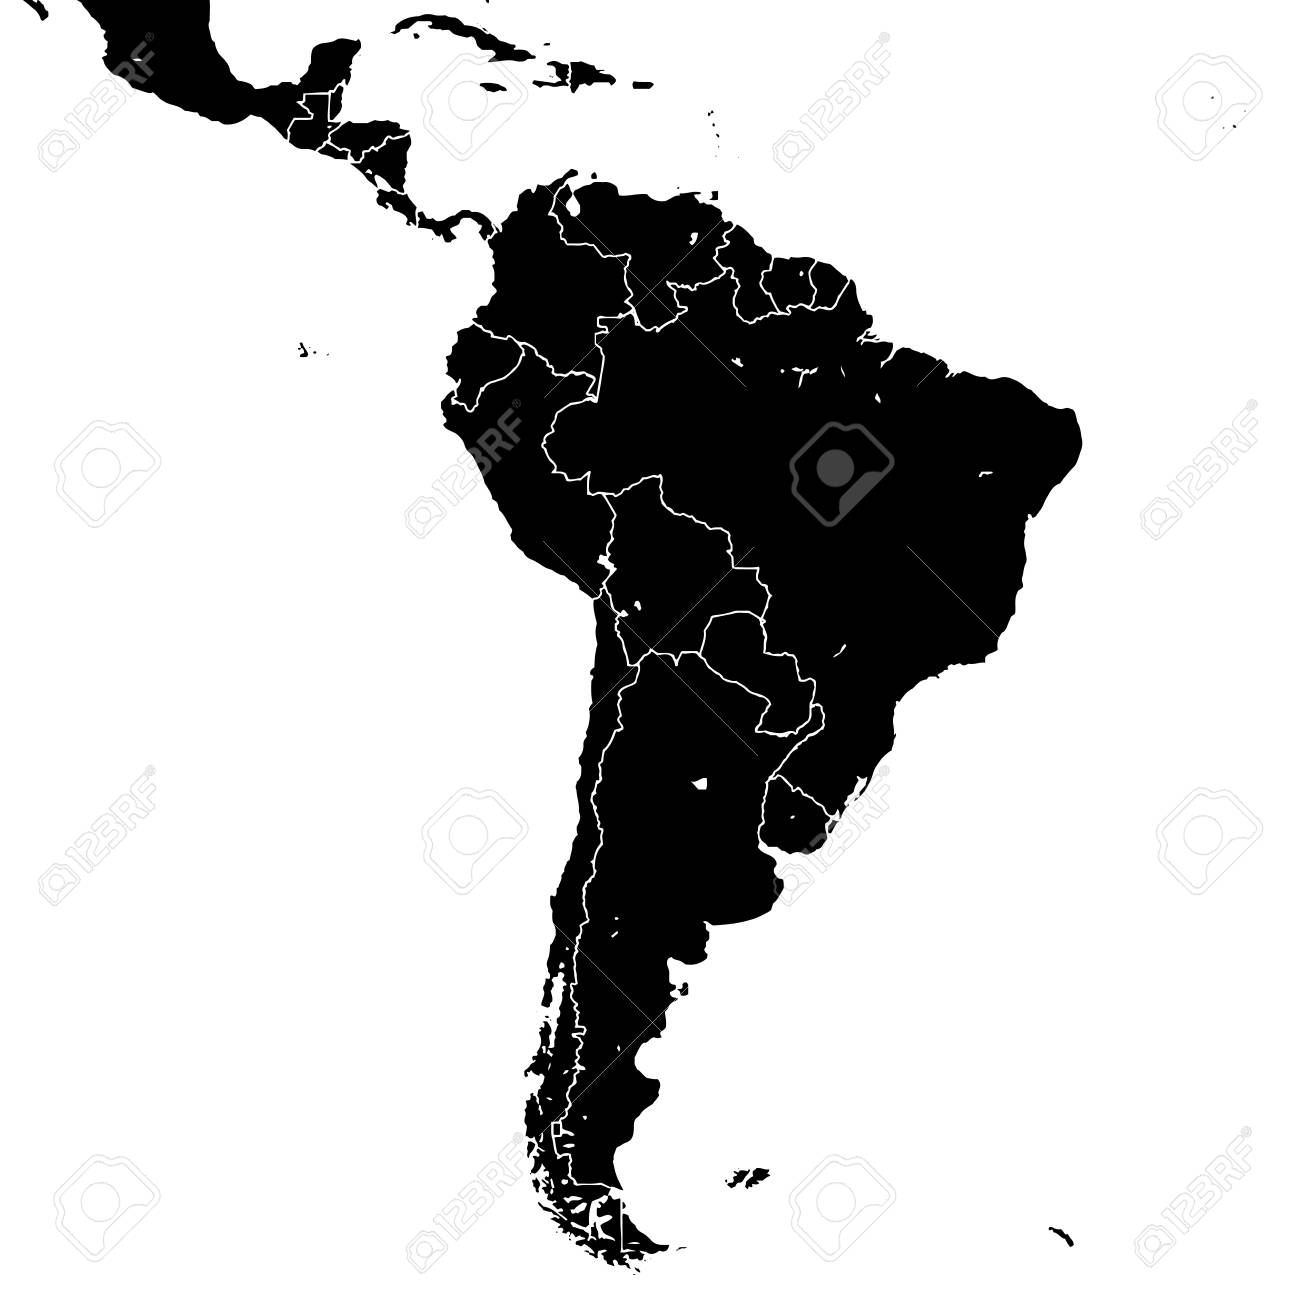 South America Silhouette Vector Map Black And White Version Royalty Free Cliparts Vectors And Stock Illustration Image 97787900